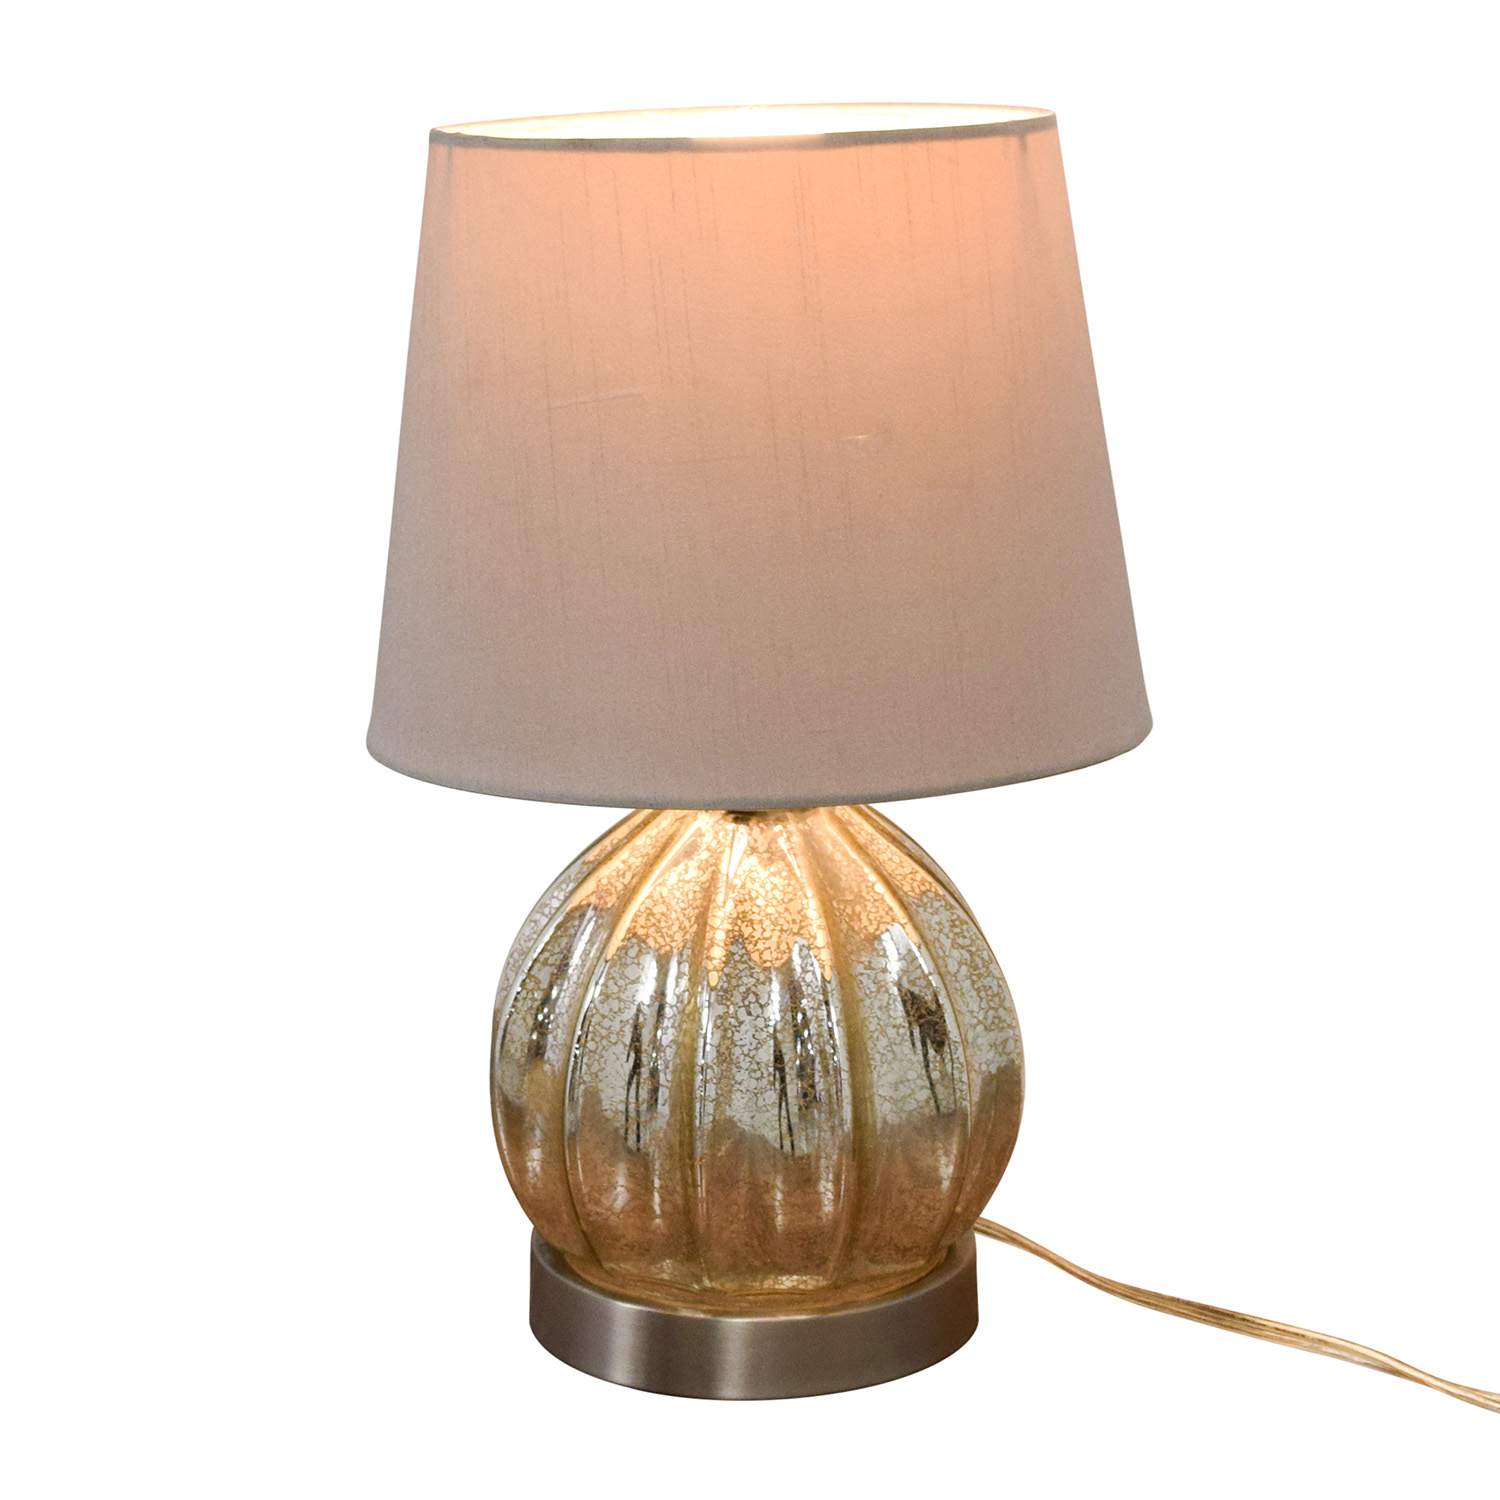 Round Mercury Glass Table Lamp dimensions